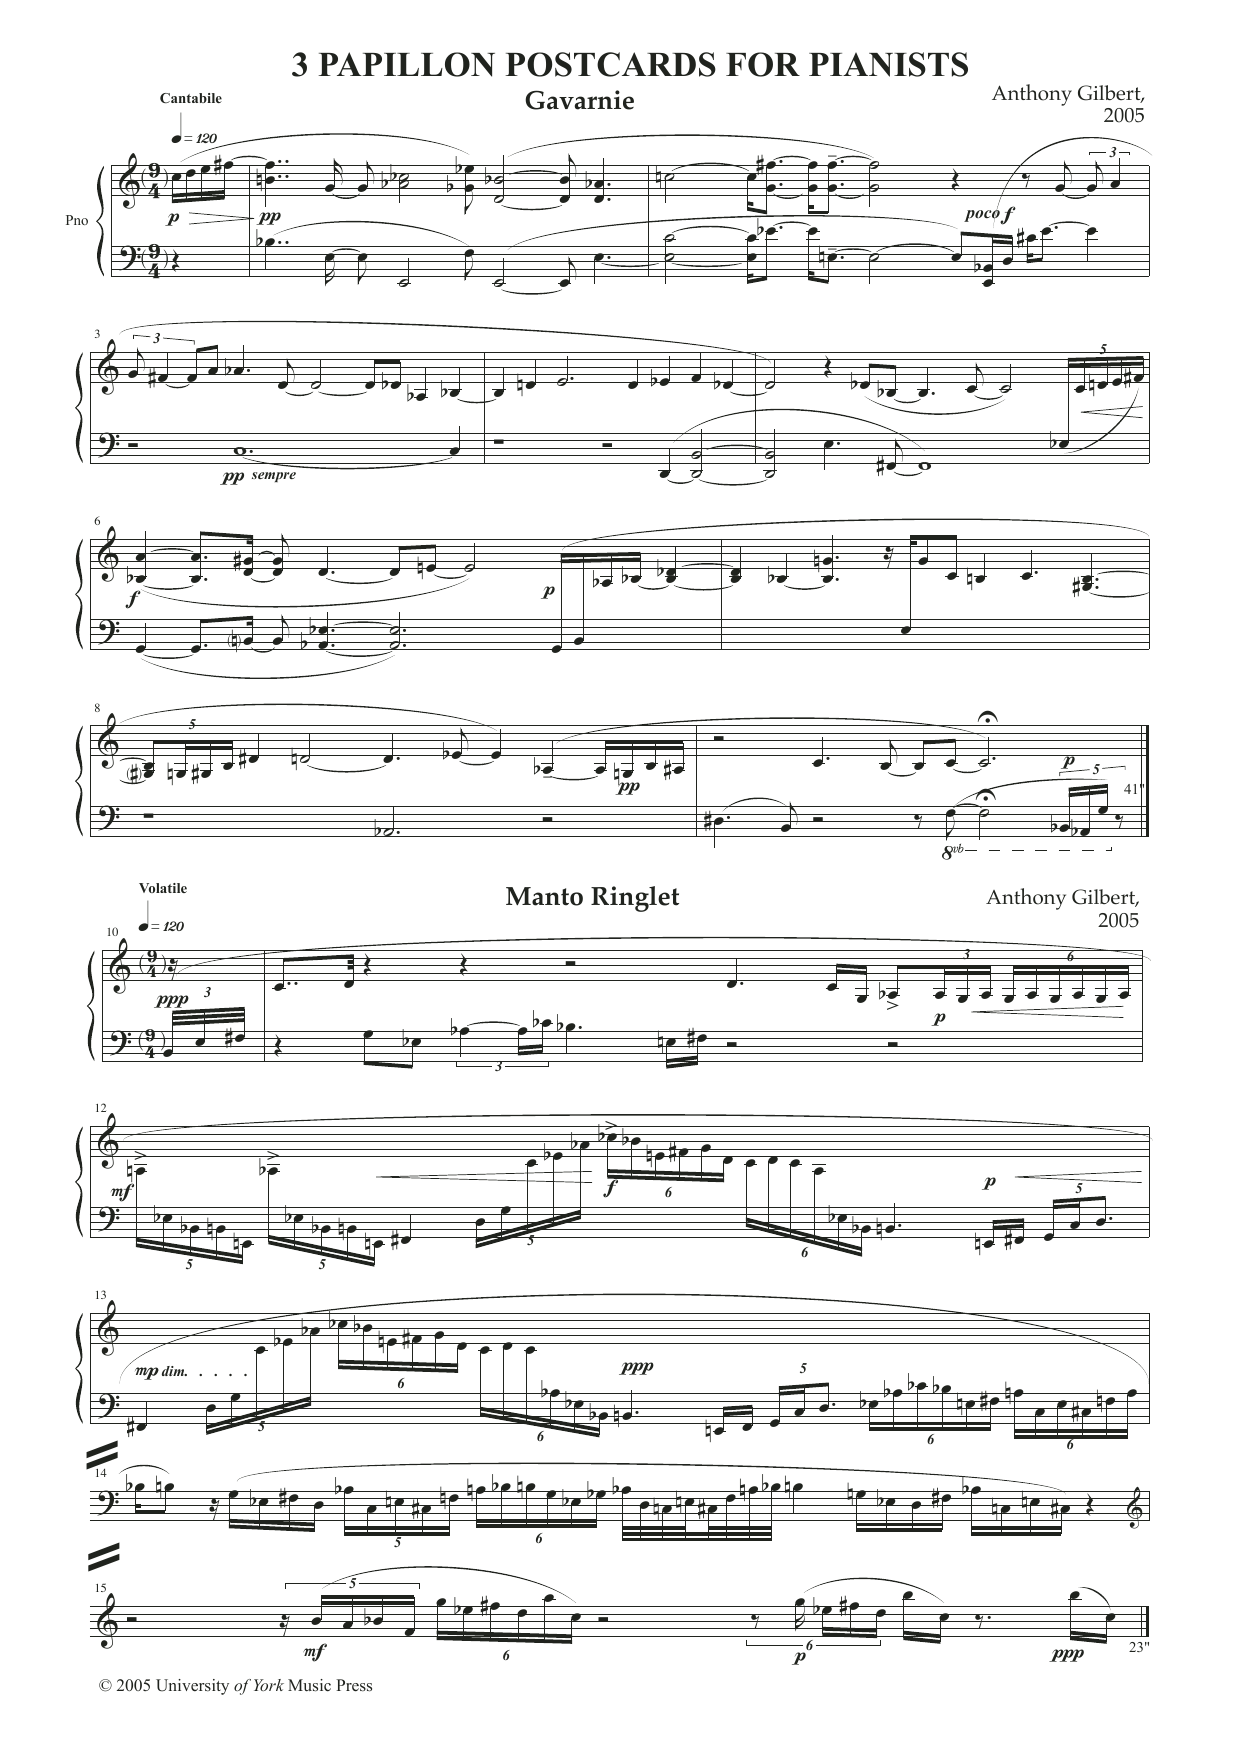 Anthony Gilbert Papillon Postcards sheet music notes and chords. Download Printable PDF.